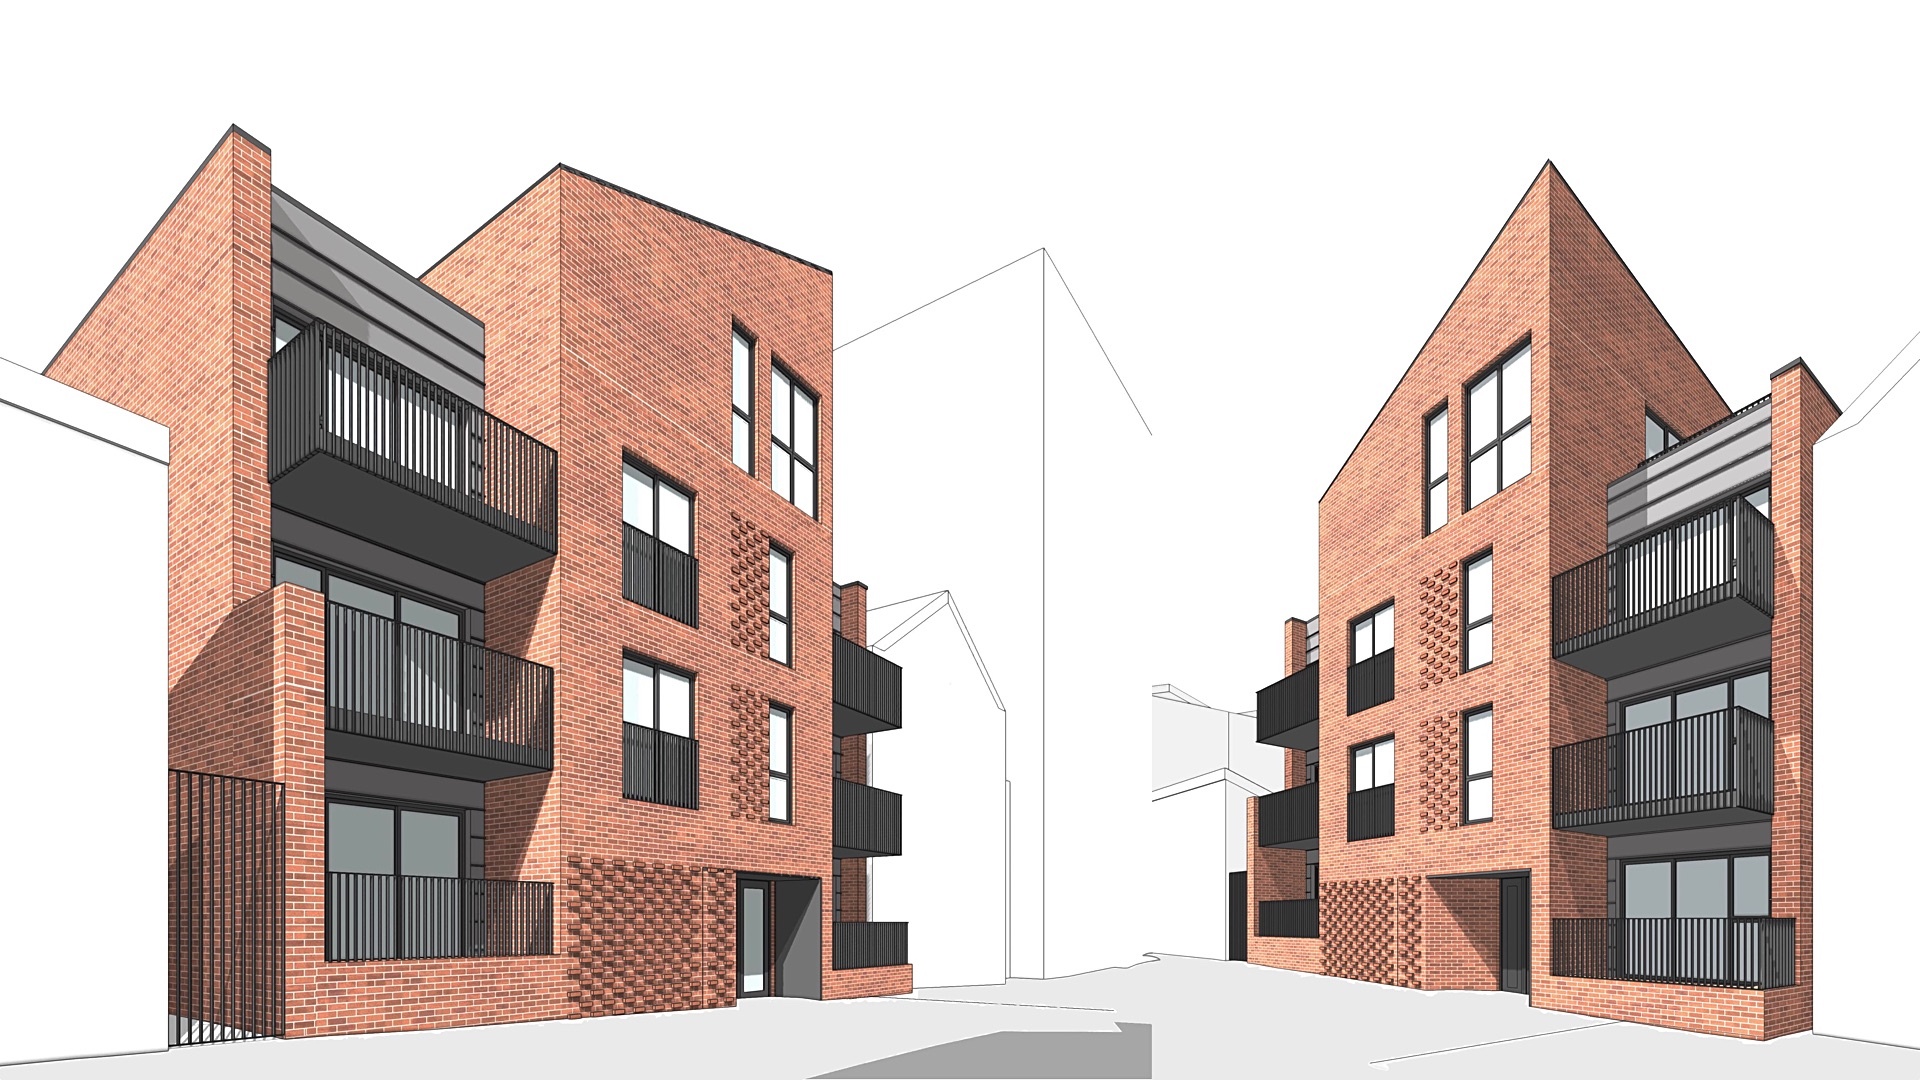 Planning application submitted for ingenious new apartment block in Bedminster